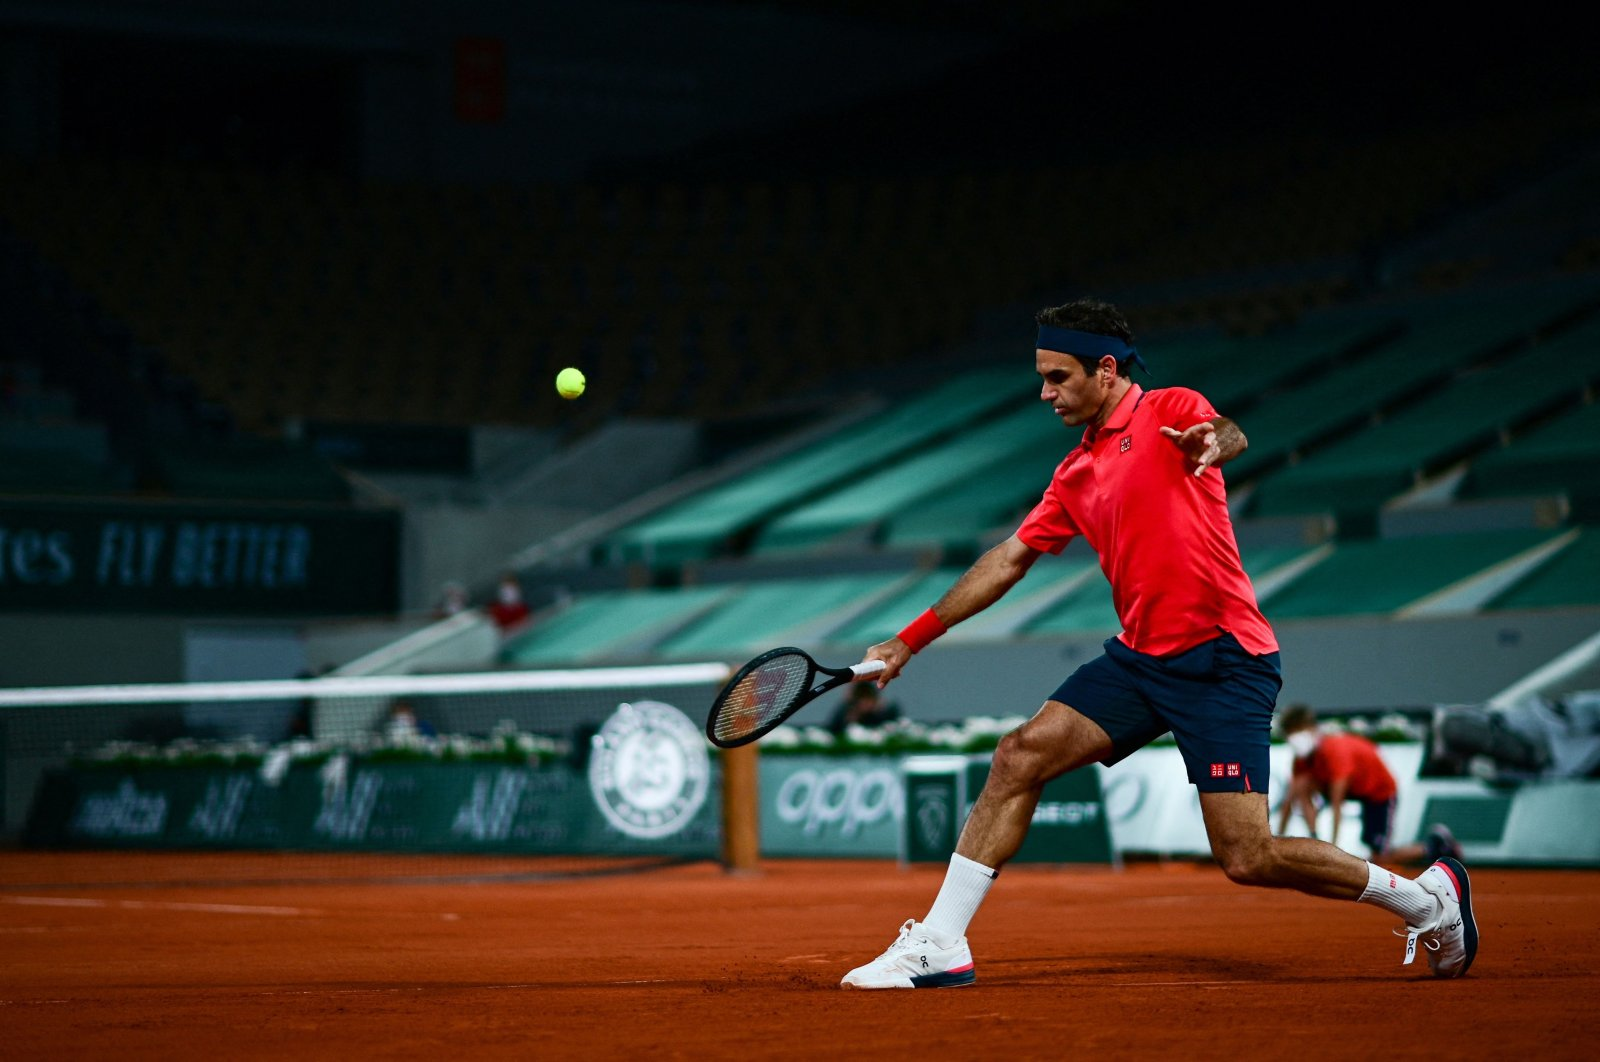 Switzerland's Roger Federer returns the ball to Germany's Dominik Koepfer during their French Open third-round match at the Roland Garros, Paris, France, June 5, 2021. (AFP Photo)